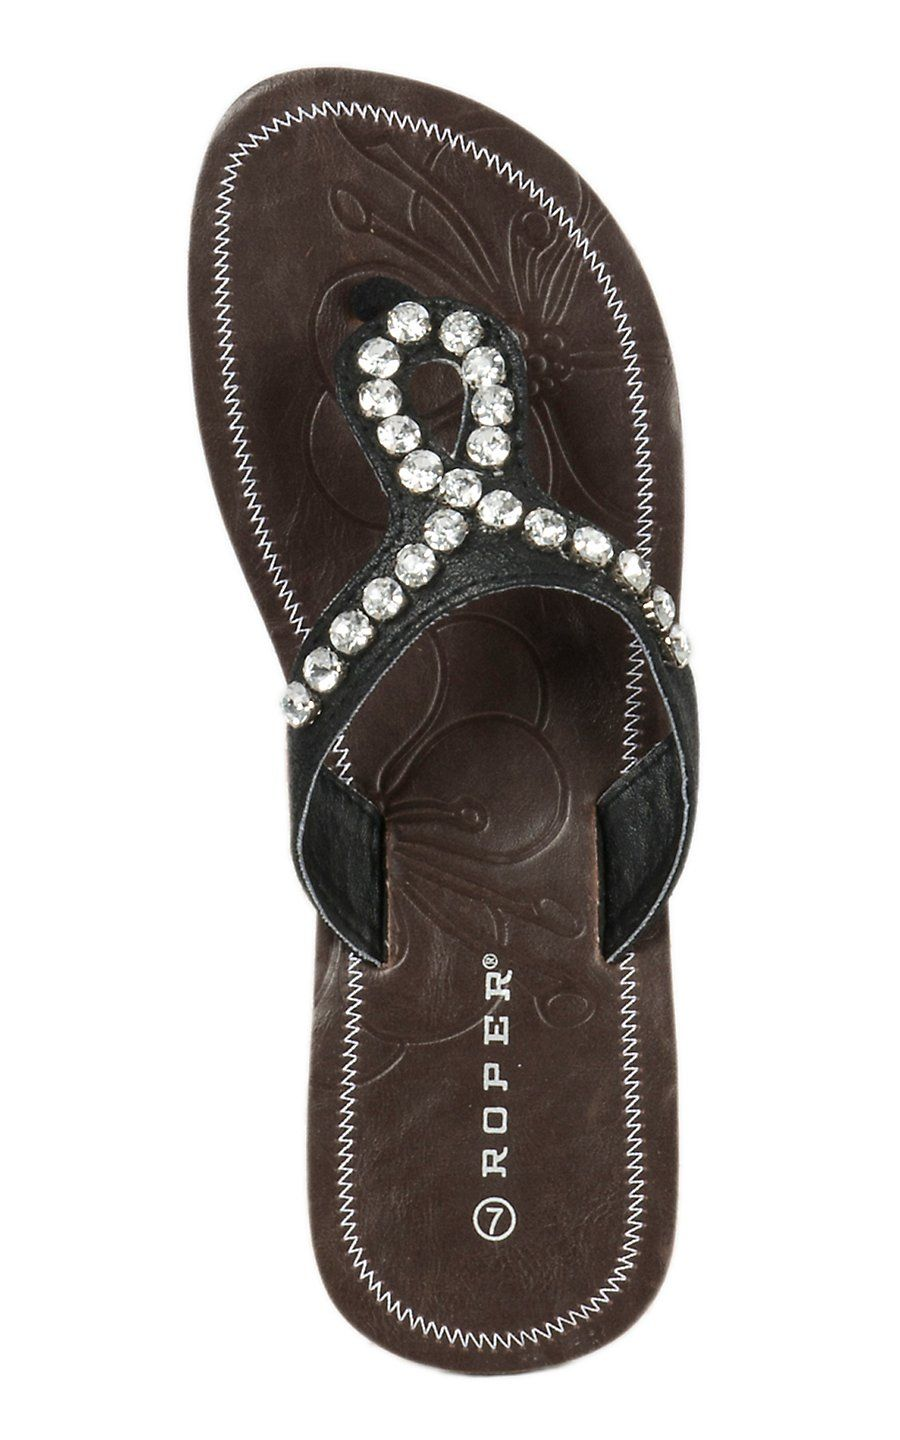 0ebdc21bbc8 Roper Women s Black Loop with Crystals Flat Sandal